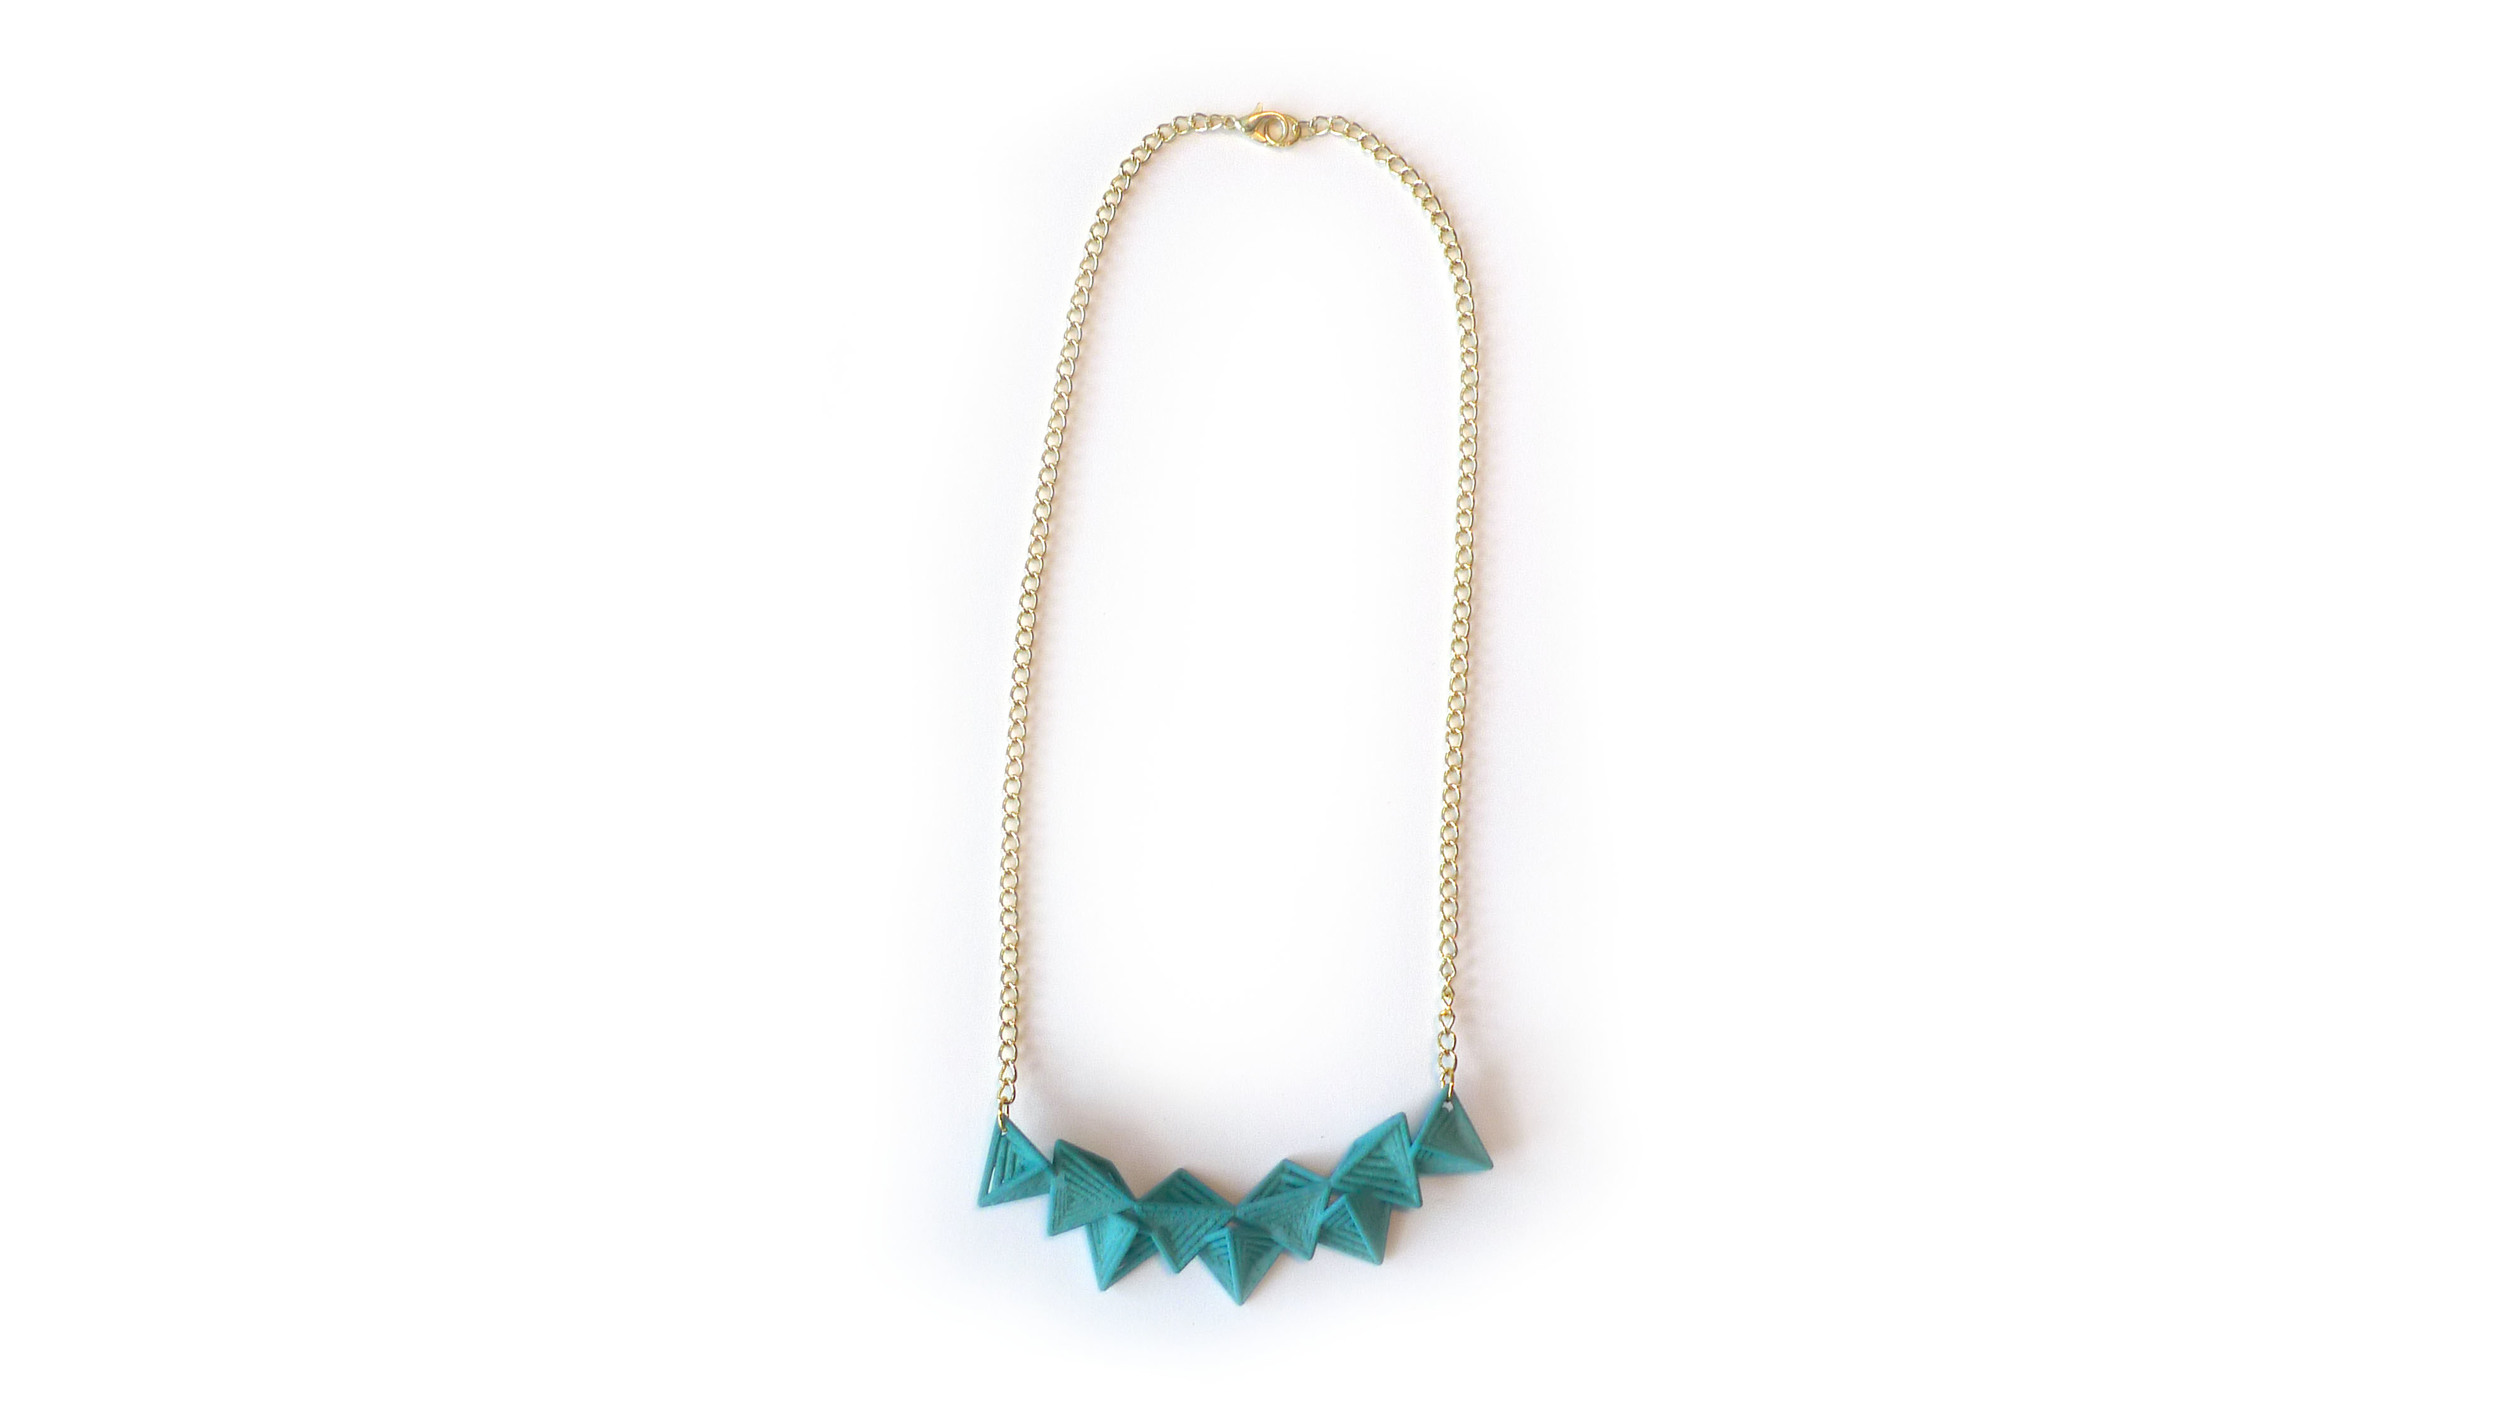 Tetryn Necklace (Bar)   6200: In Nylon $14